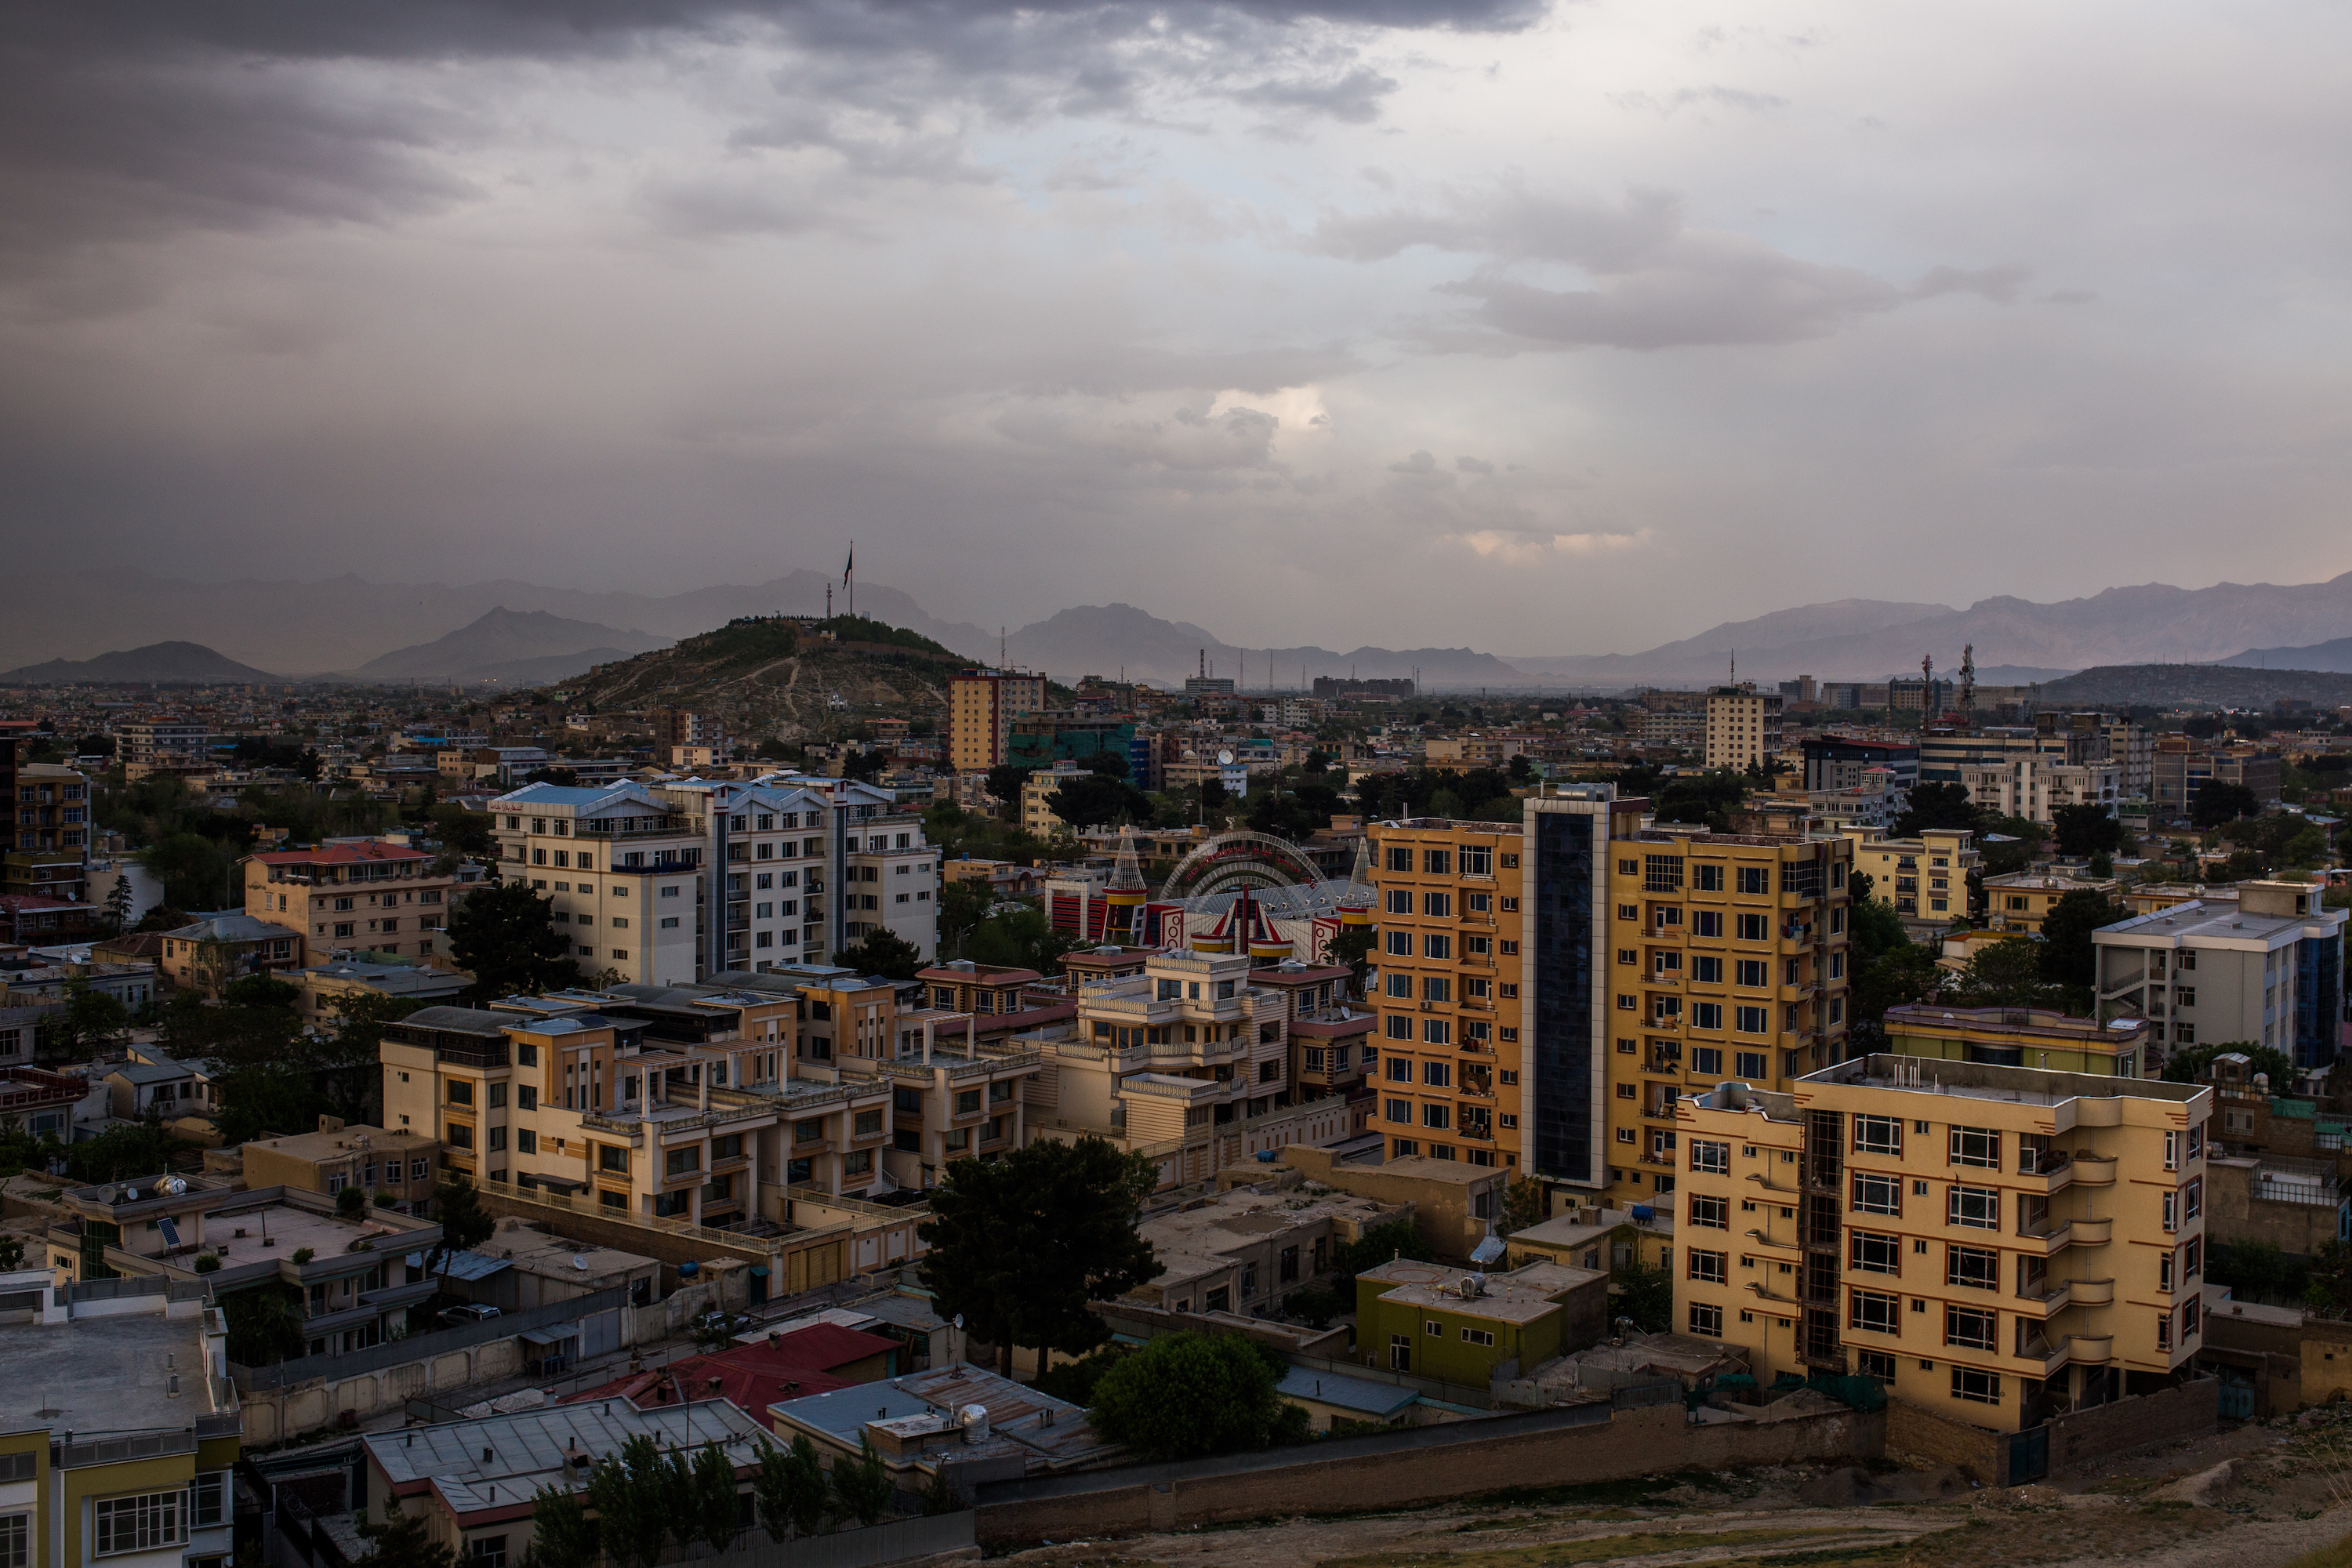 Skyline of Kabul, Afghanistan